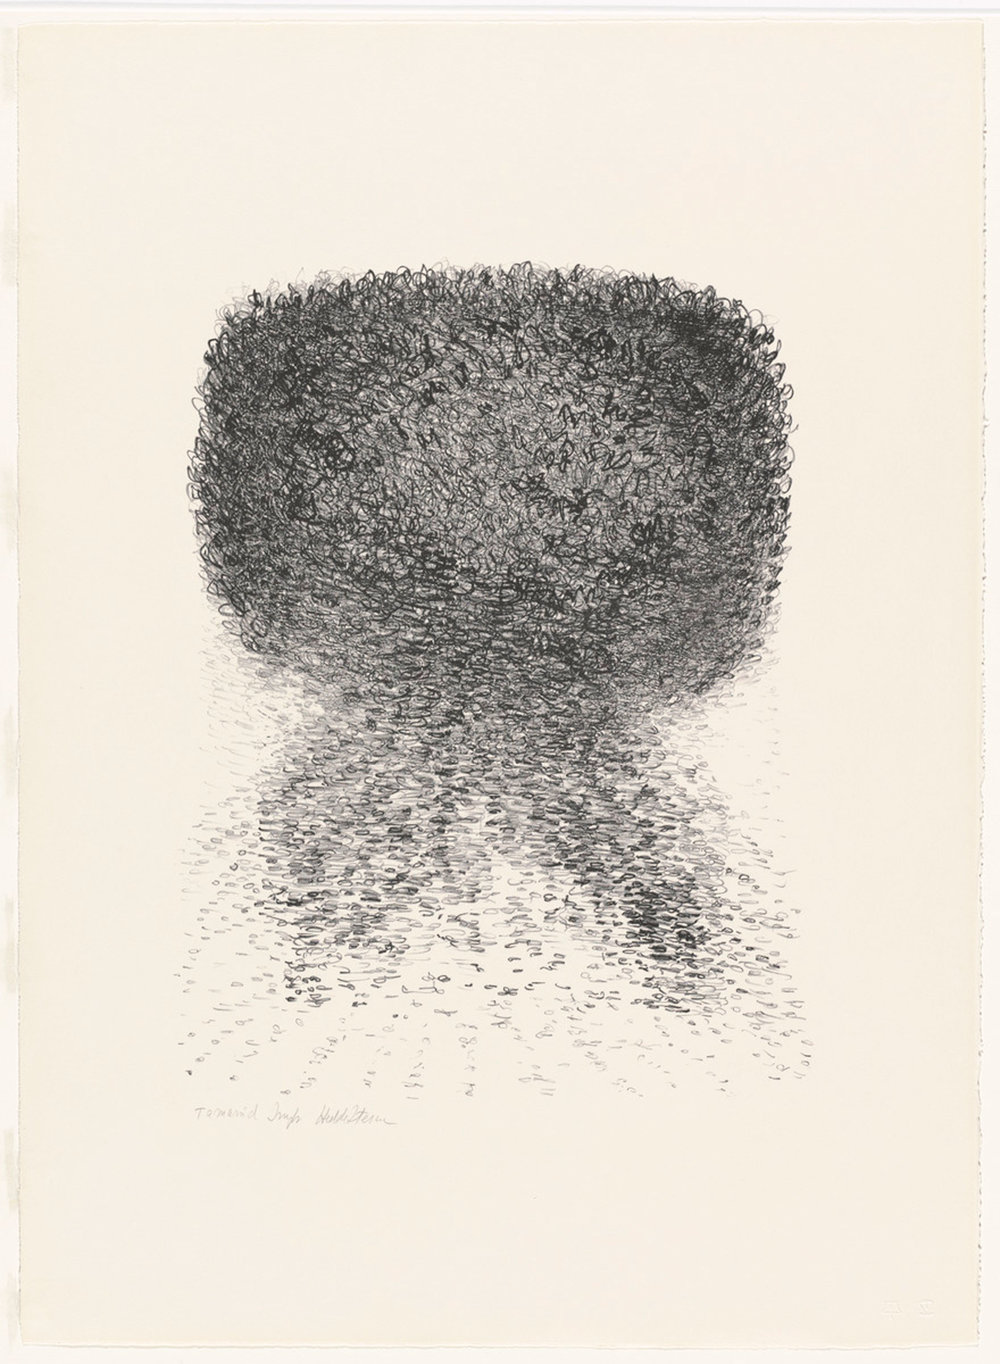 Hedda Sterne,  Untitled , 1967, Lithograph (edition of 10), 29 in. x 21 in.